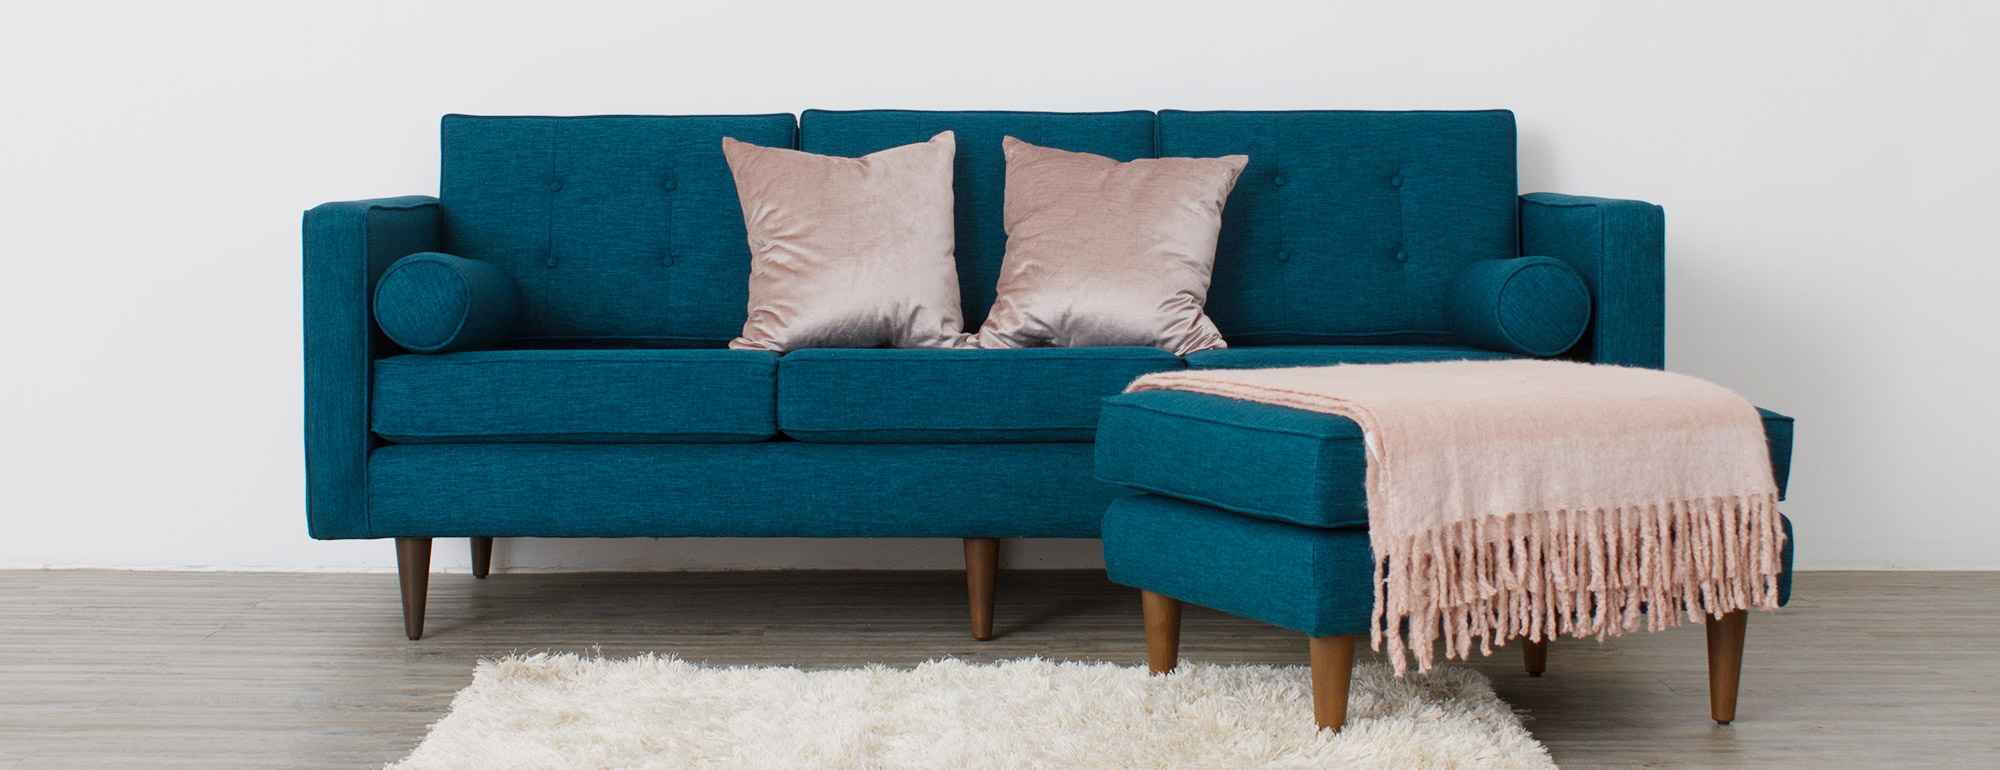 hero-braxton-sofa-6